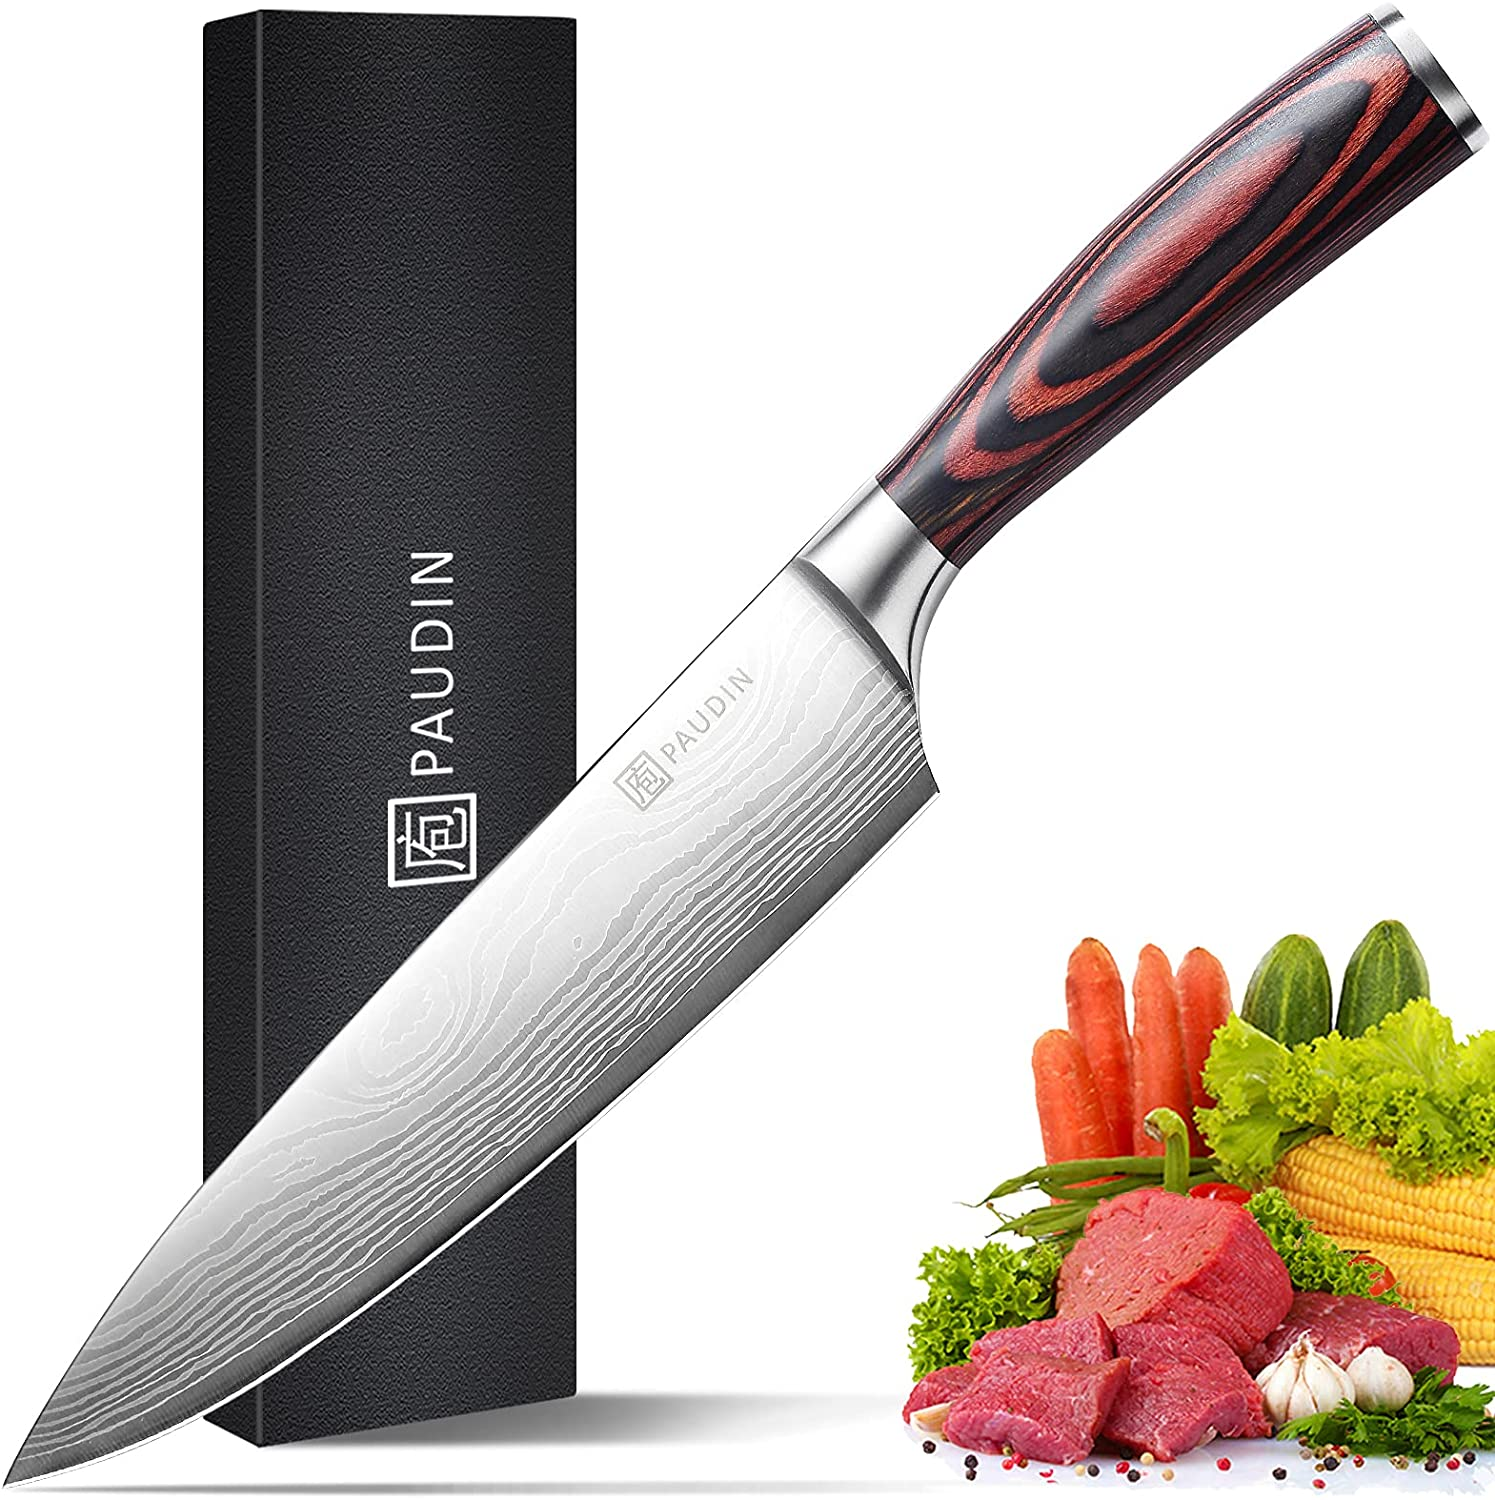 PAUDIN N1 8 inch Kitchen Knife, German High Carbon Stainless Steel Sharp Knife, Professional Meat Knife with Ergonomic Handle and Gift Box